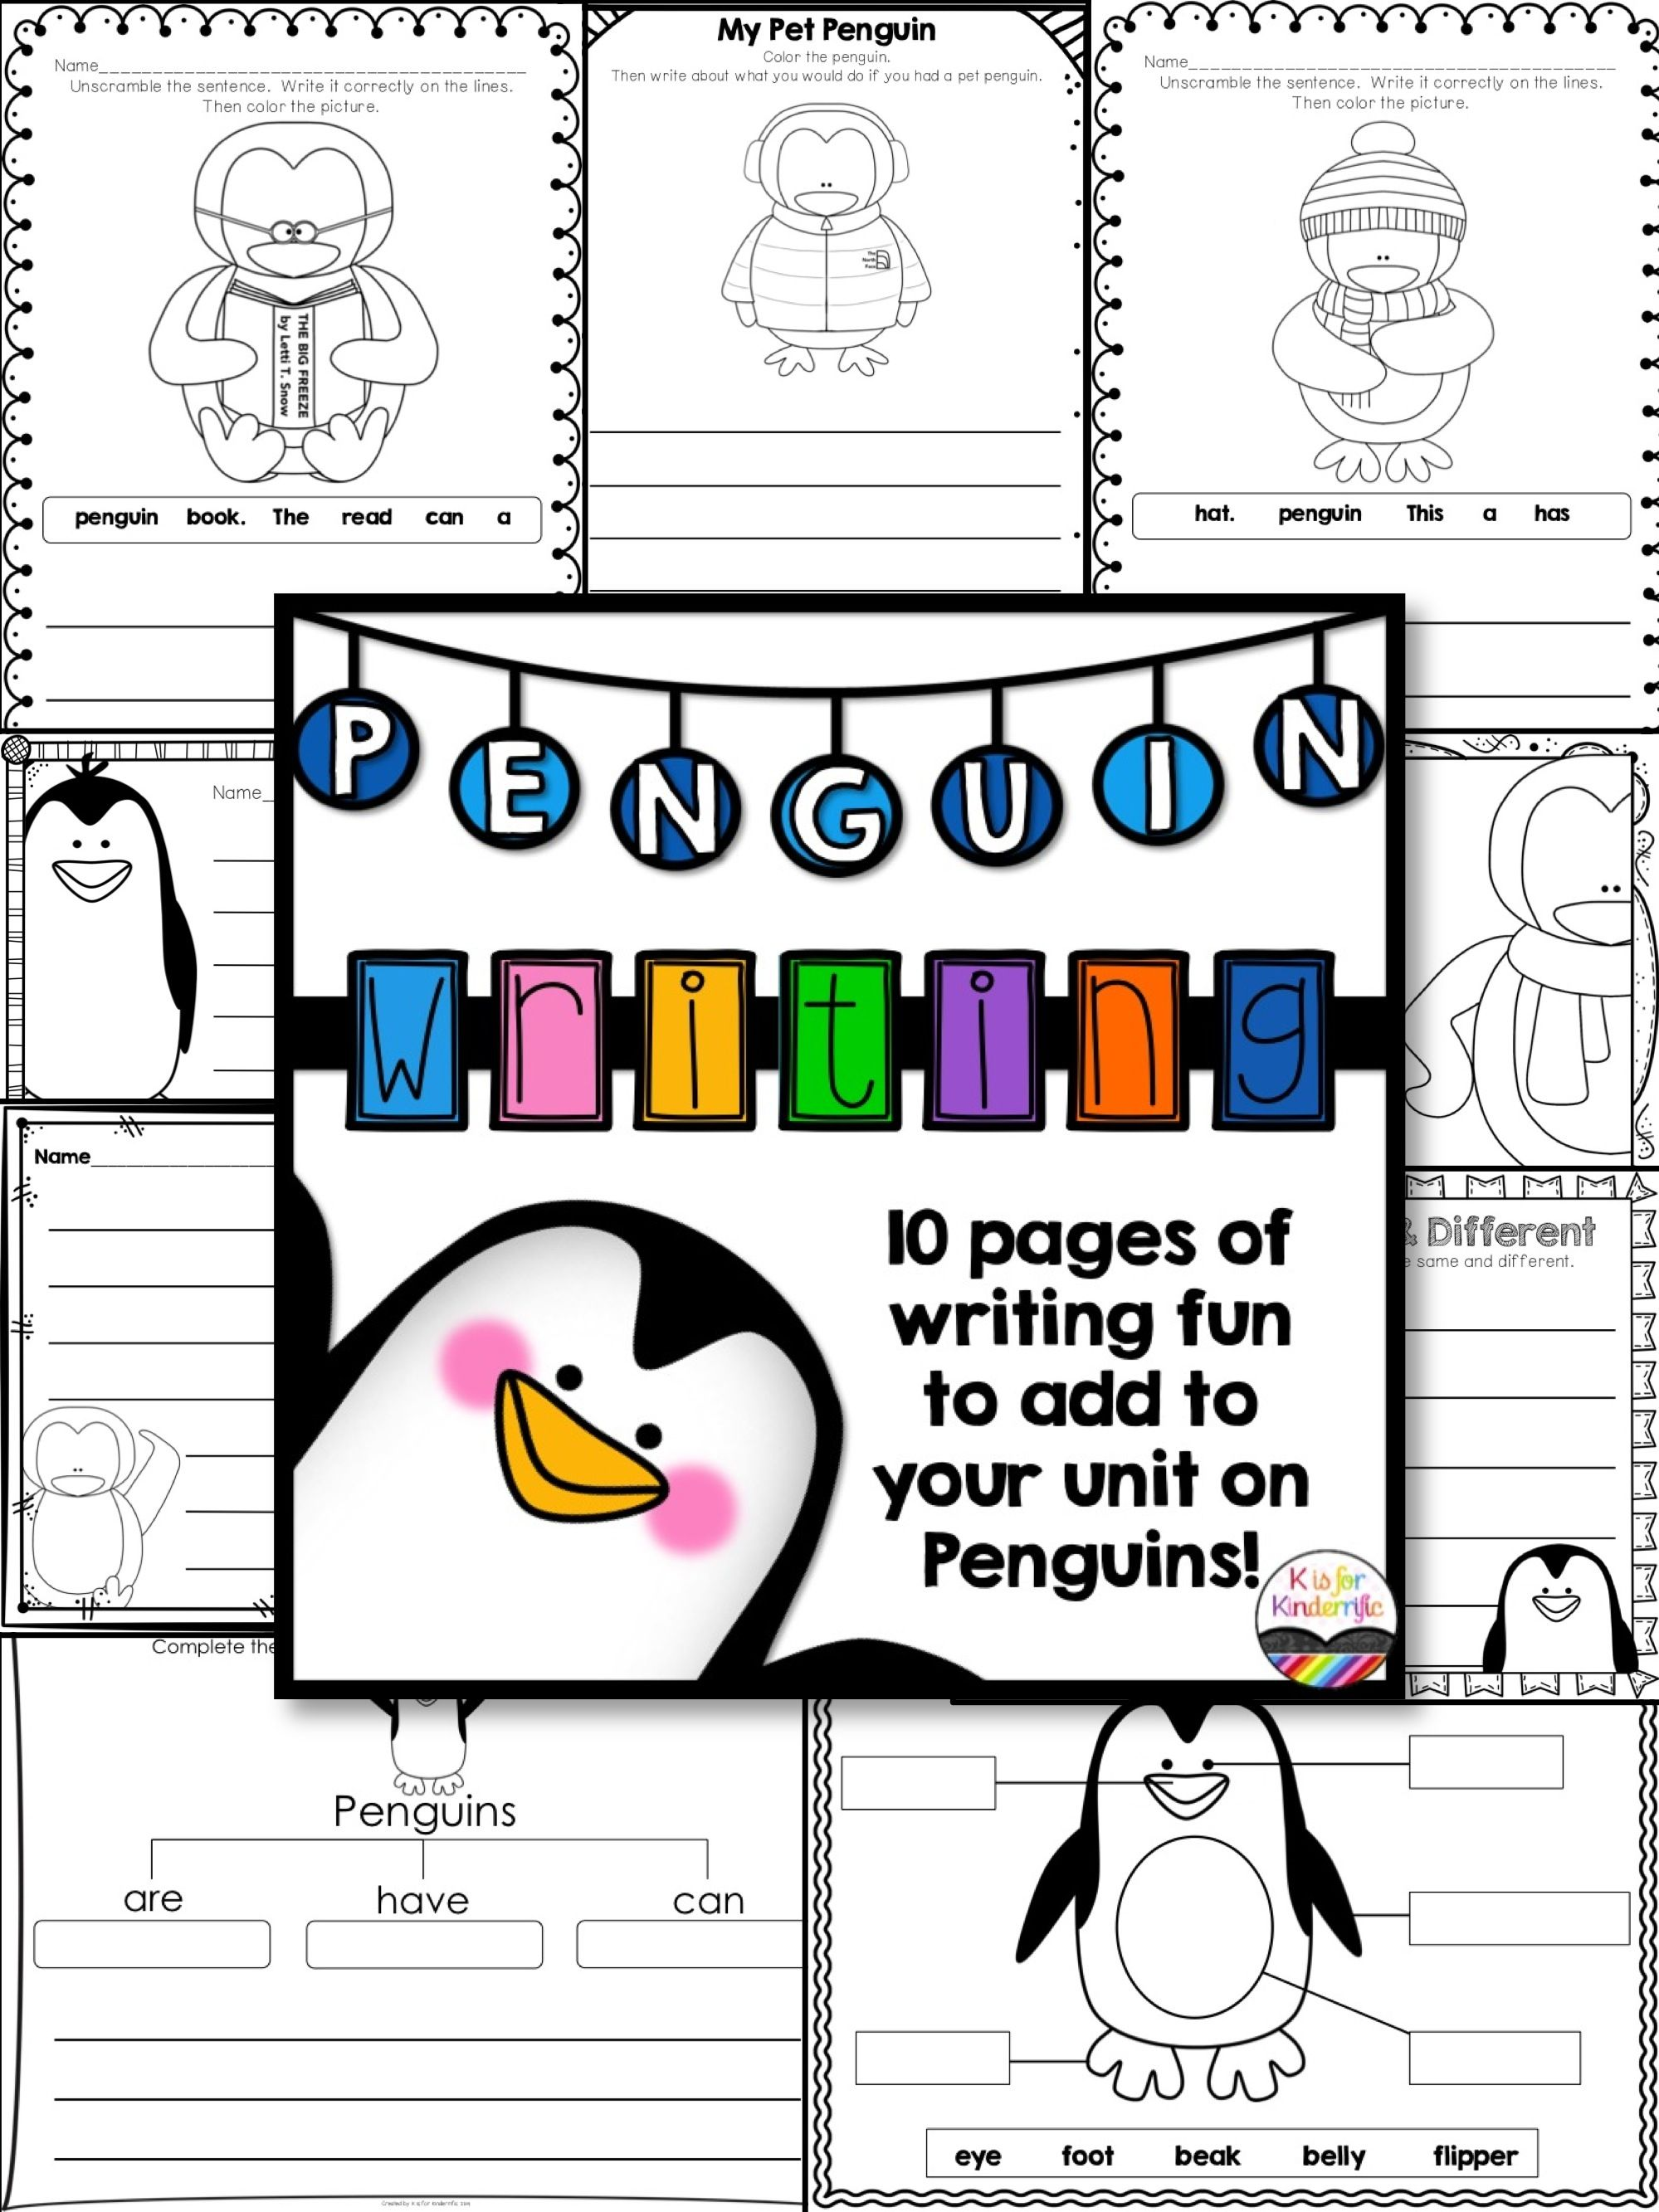 Essay on Penguins – Birds that Cannot Fly